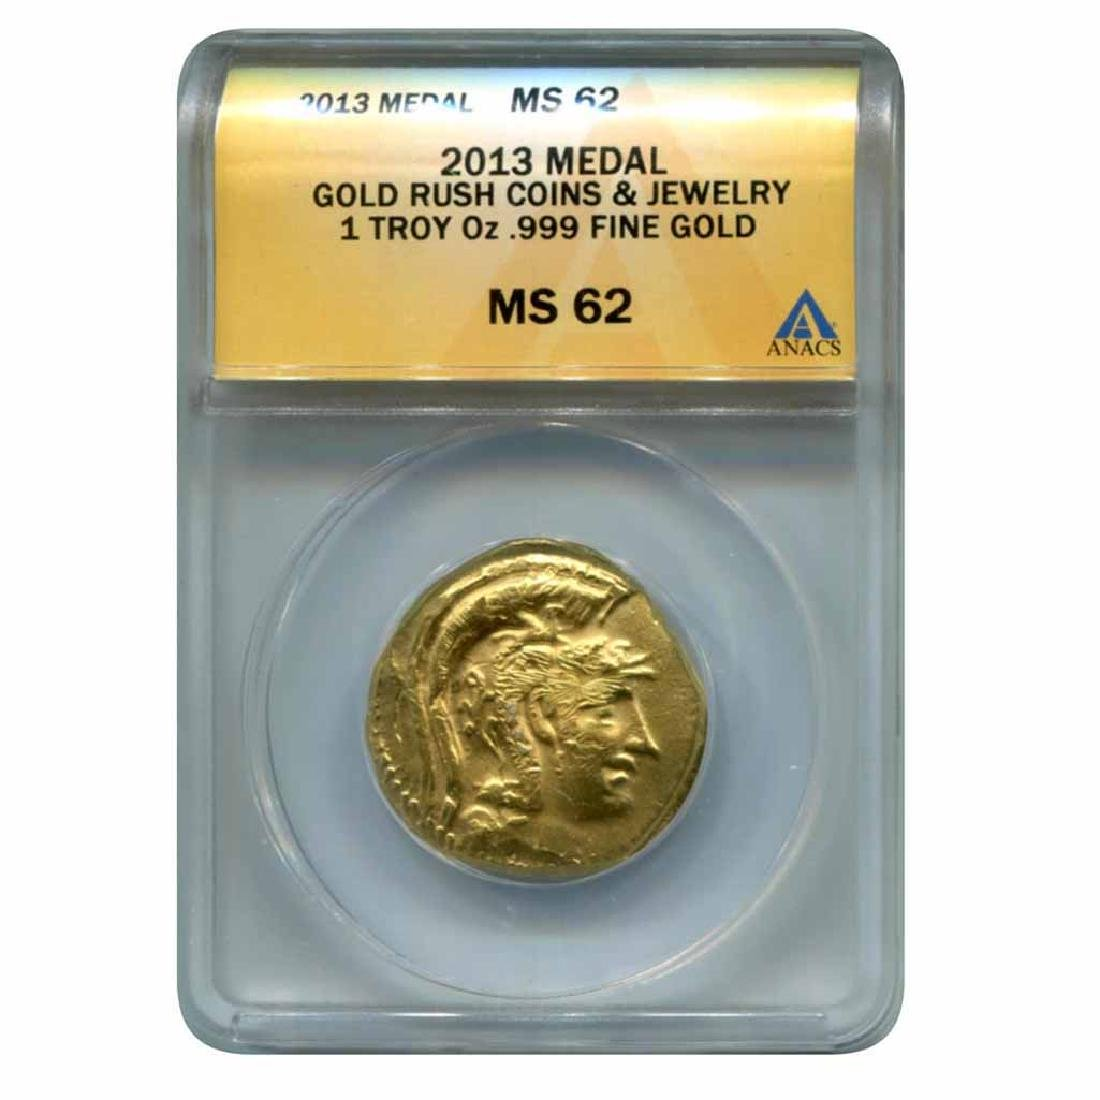 Gold Rush Coins & Jewelry 1 oz. Gold Medal 2013 MS62 AN